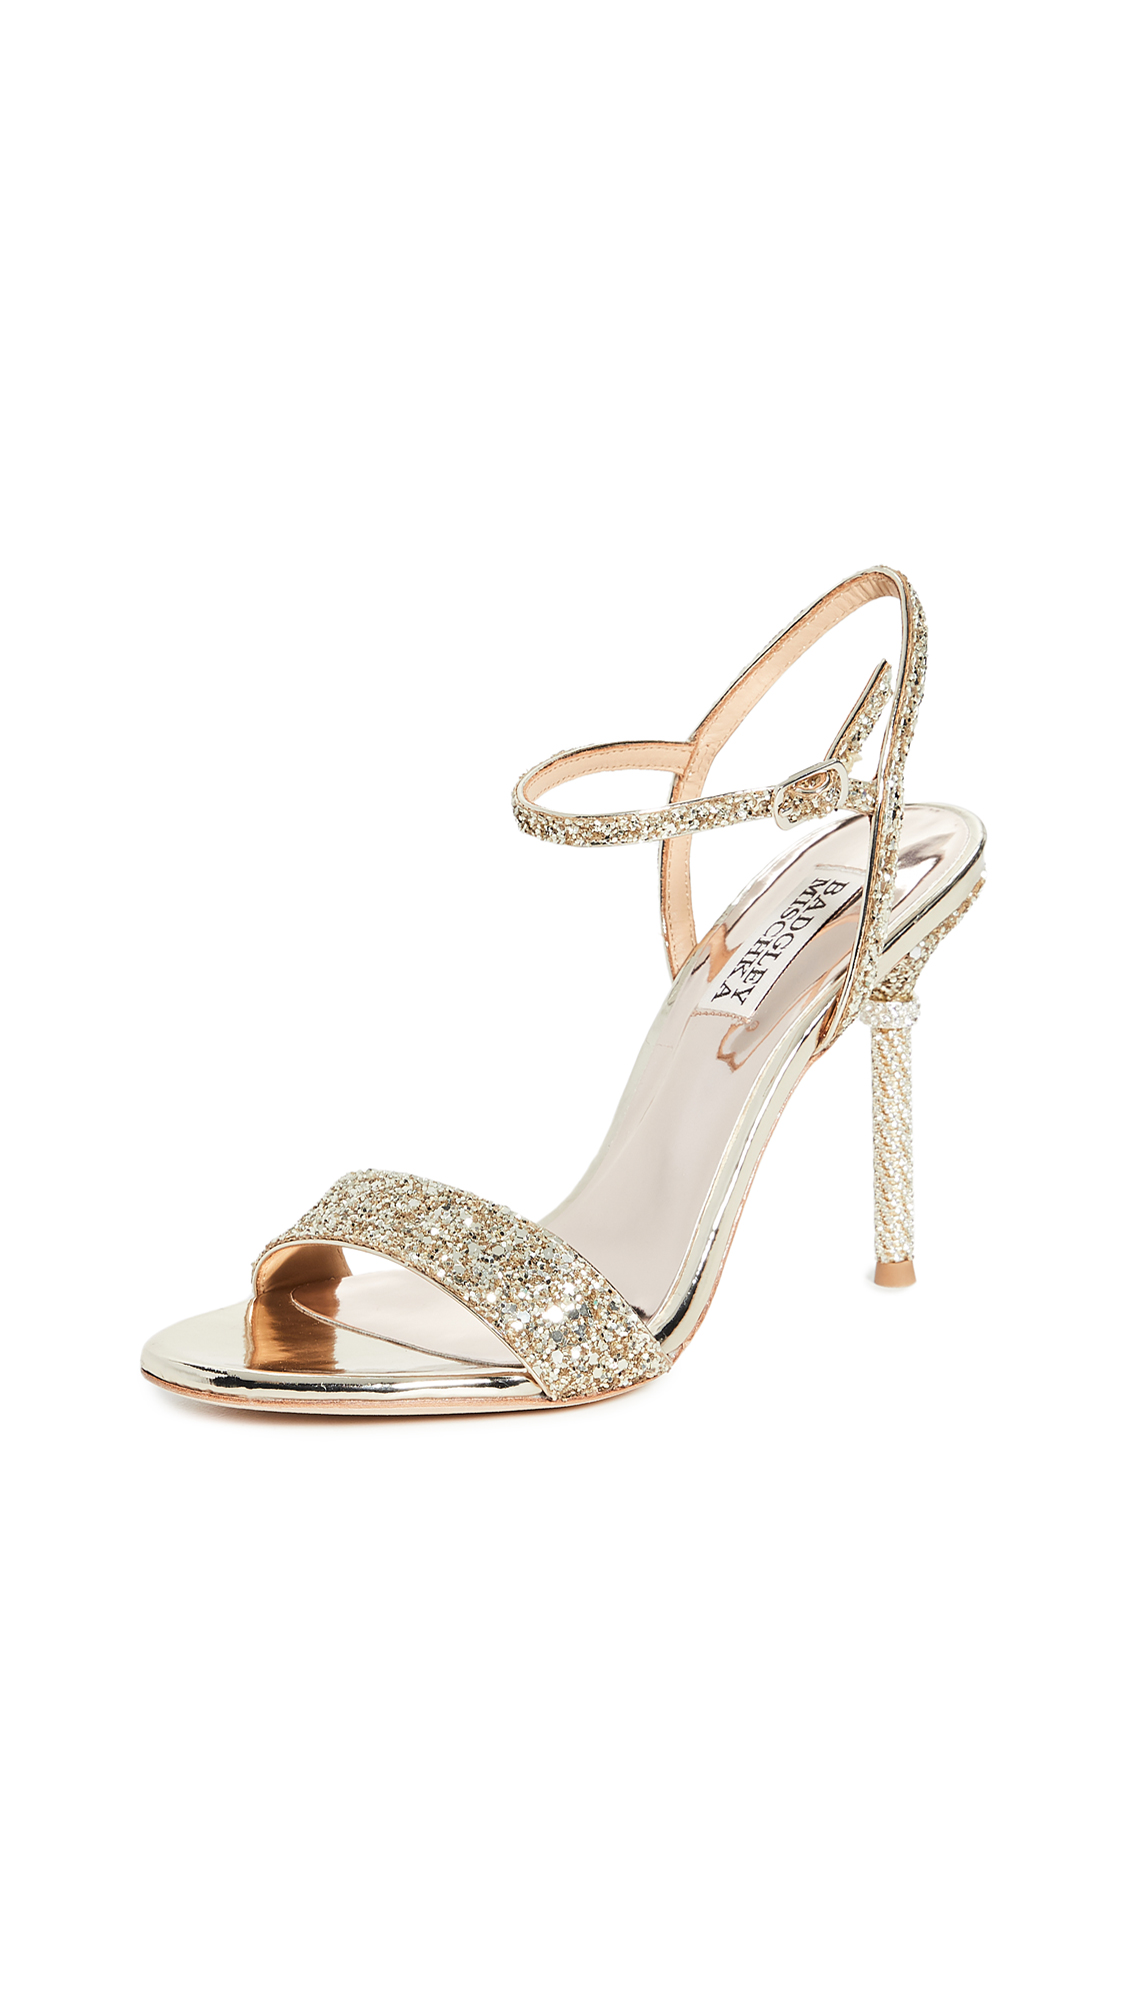 Badgley Mischka Olympia Strappy Sandals – 50% Off Sale